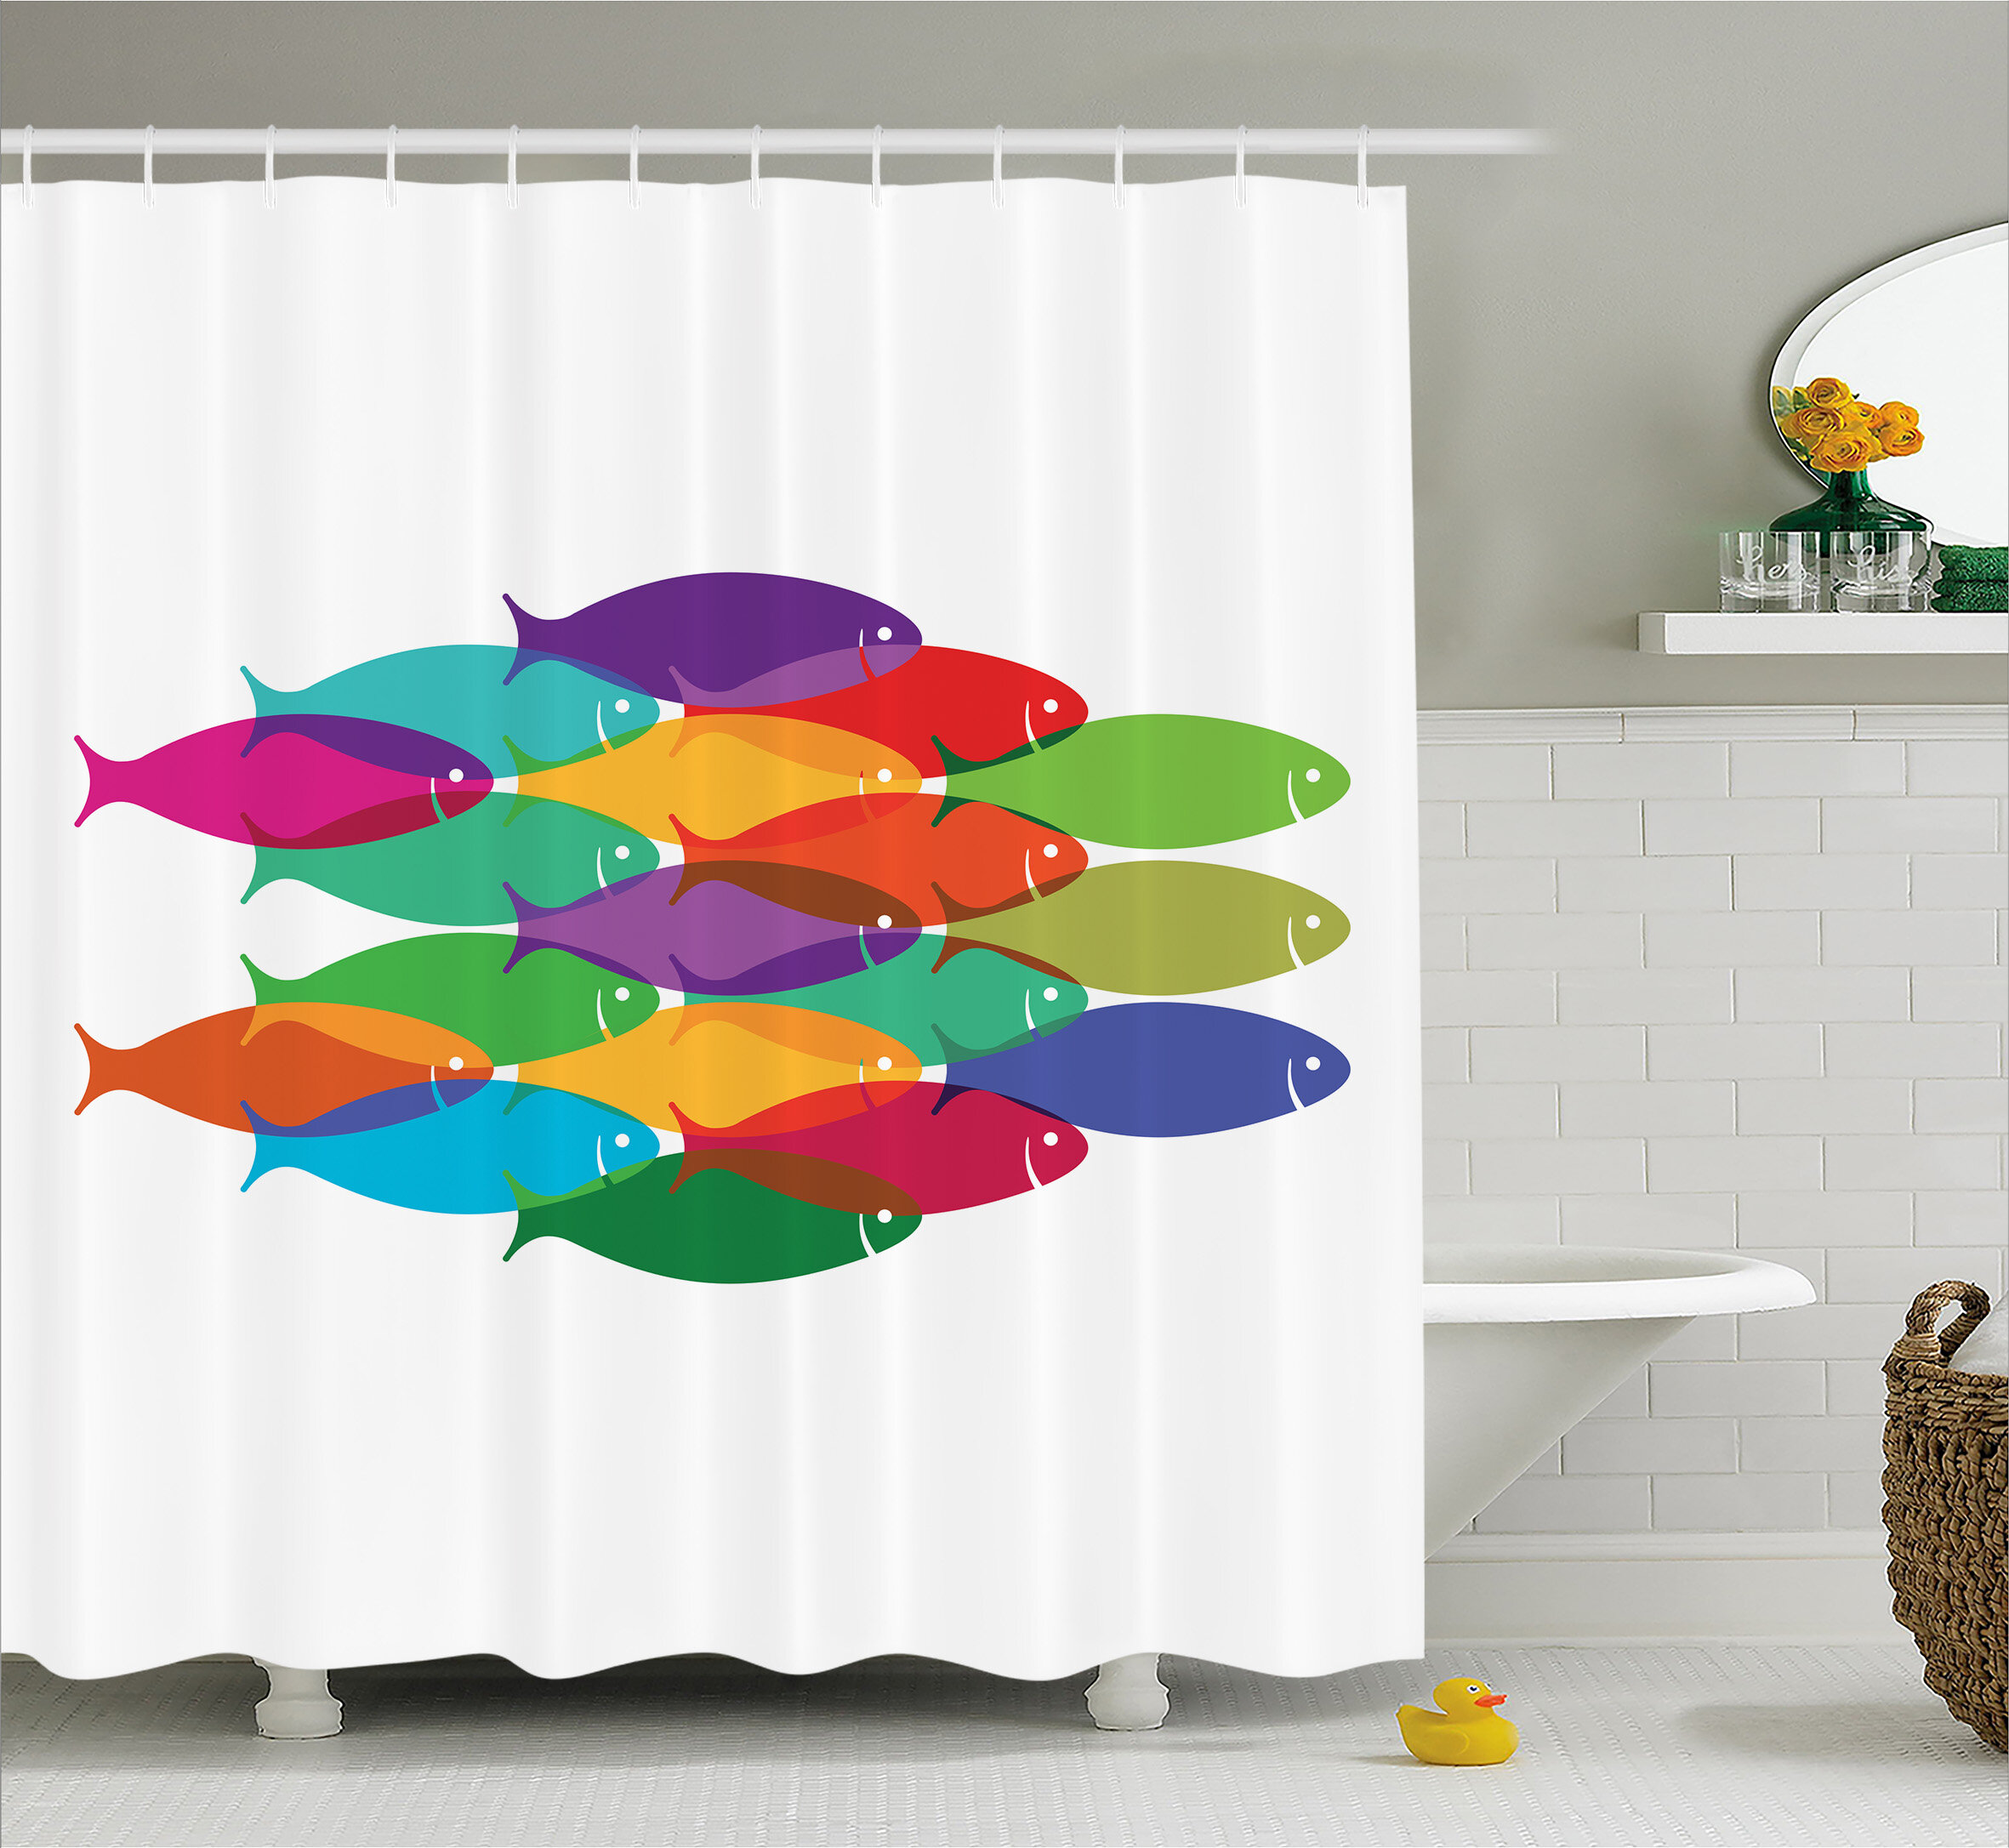 Funny Bass Fish With Hooks at River Bathroom Fabric Shower Curtain /& 12 Hooks